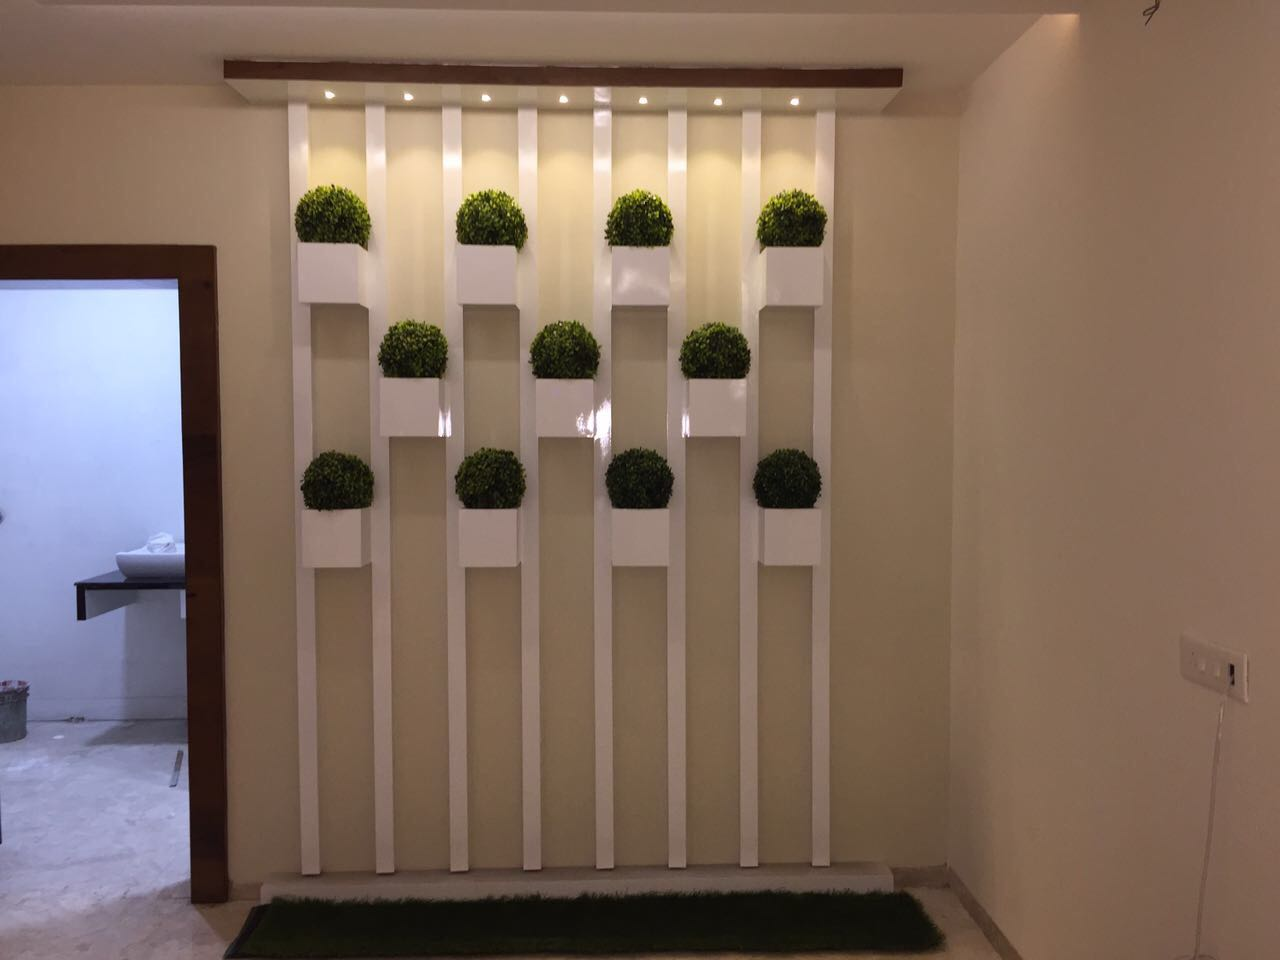 Hallway Decor With Hanging Mini Vases and Recessed Built-in Light by Shravan Hendre Indoor-spaces Modern | Interior Design Photos & Ideas